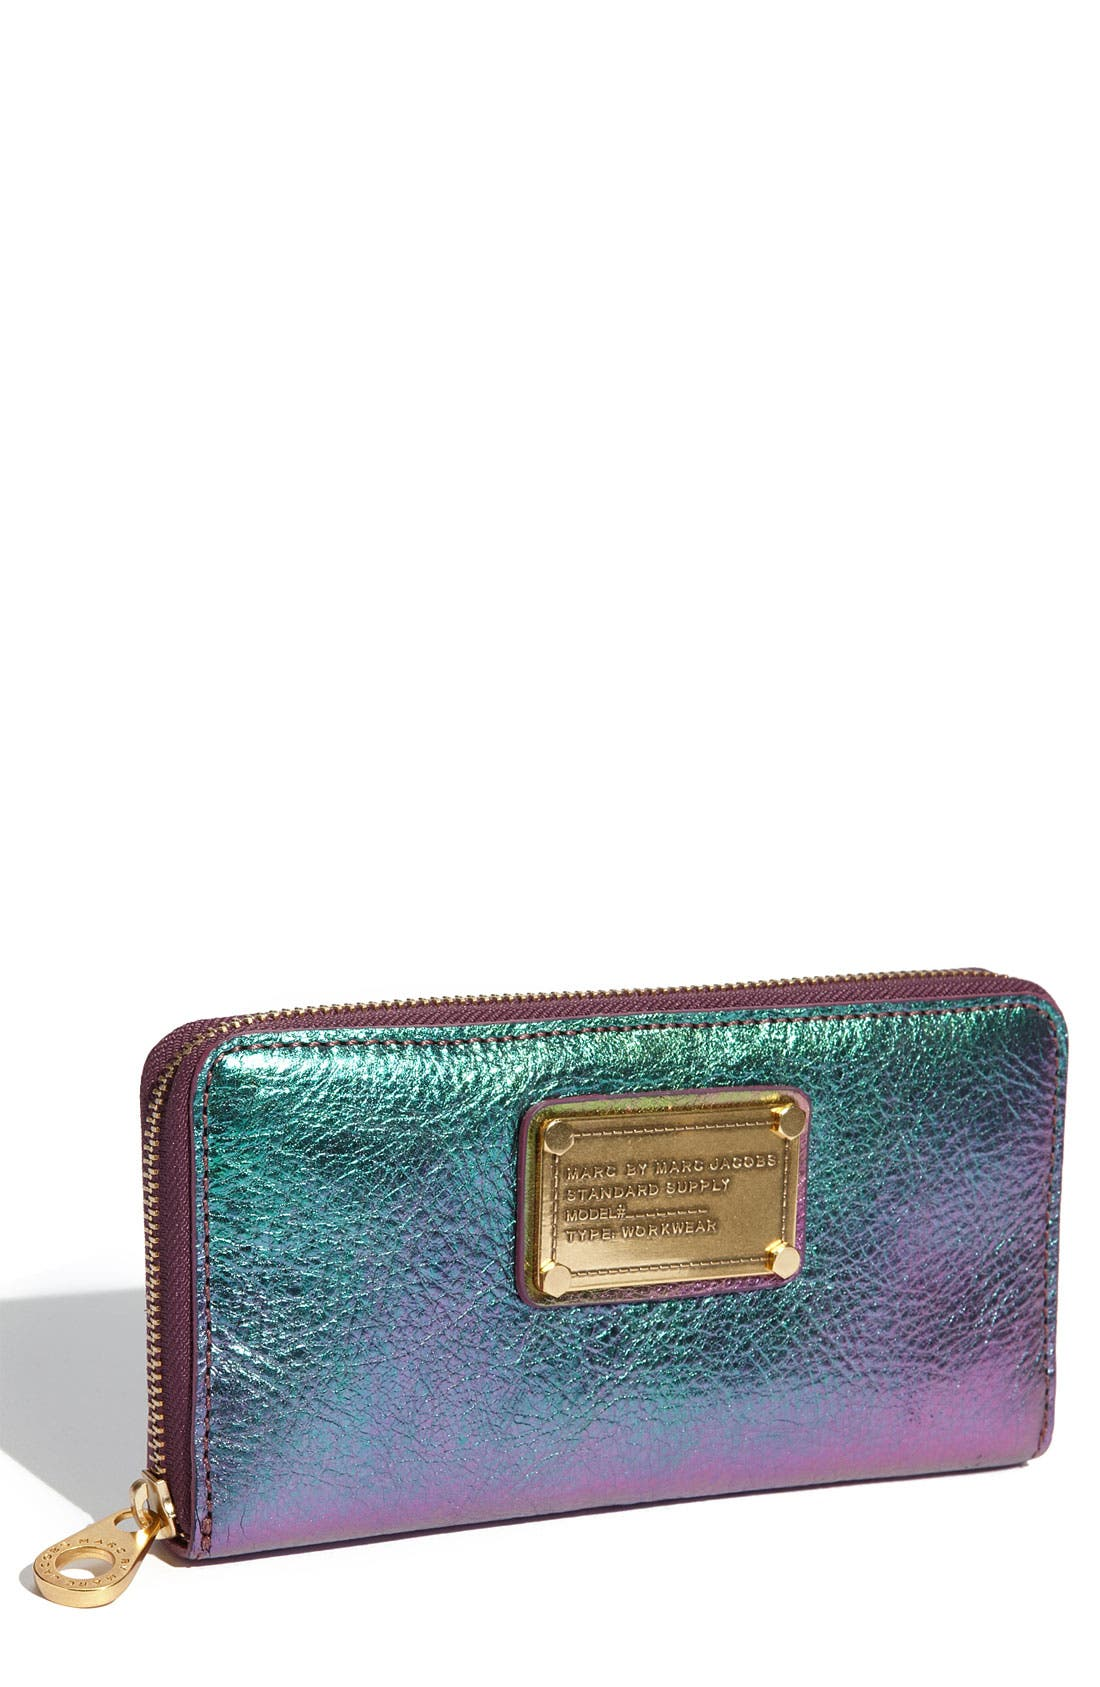 Main Image - MARC BY MARC JACOBS 'Classic Q - Vertical Zippy' Wallet